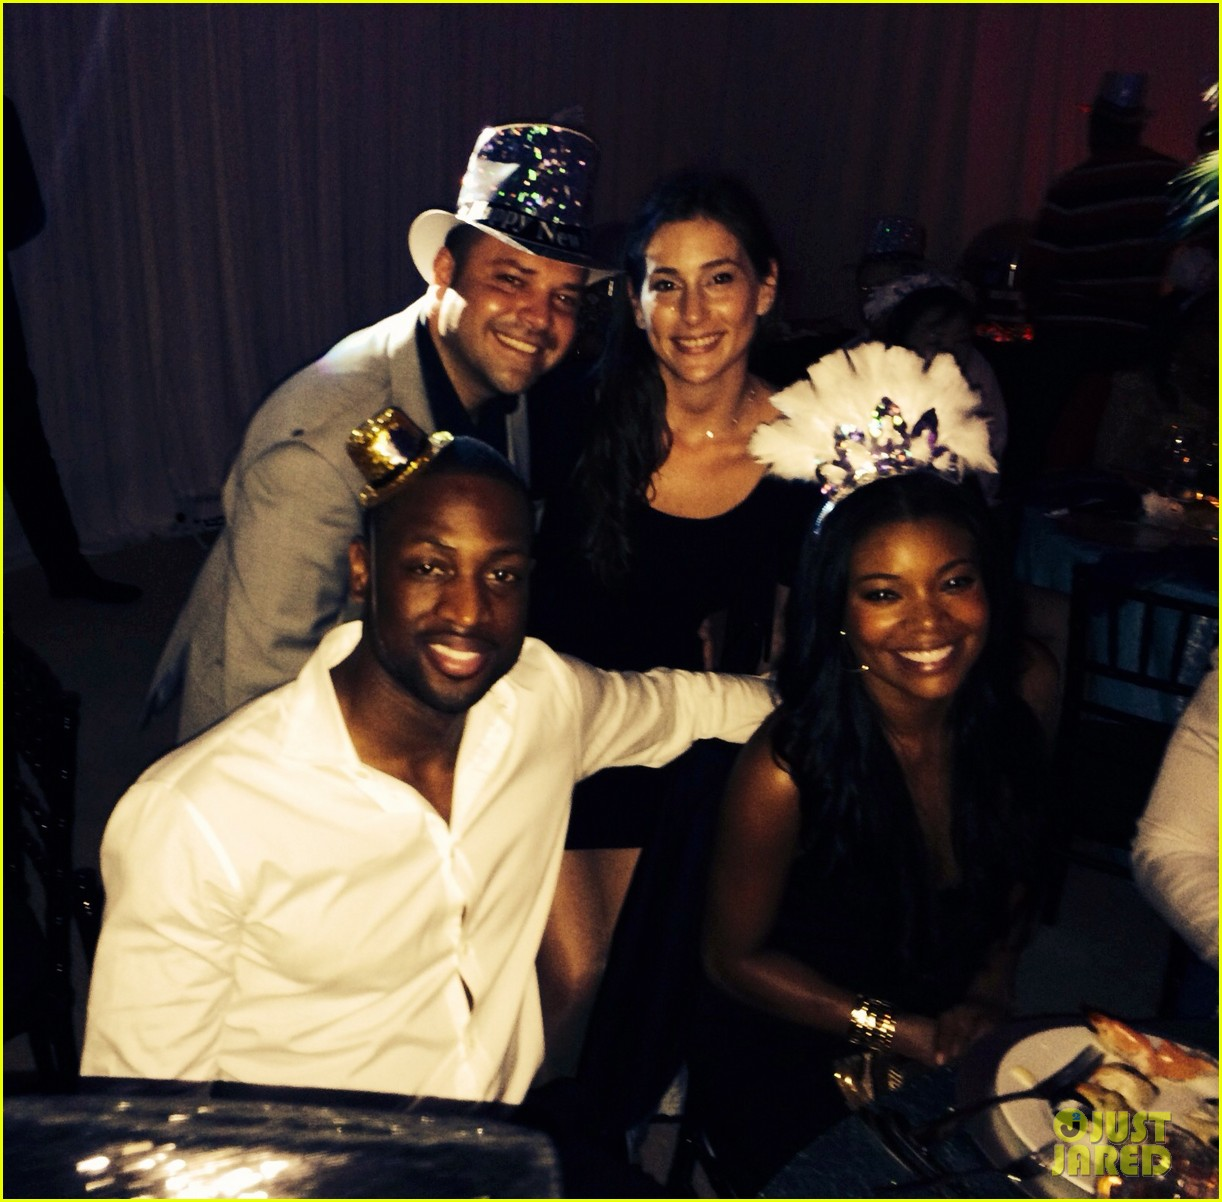 gabrielle union dwyane wade celebrate new years eve with chris adrienne bosh 03.3021523